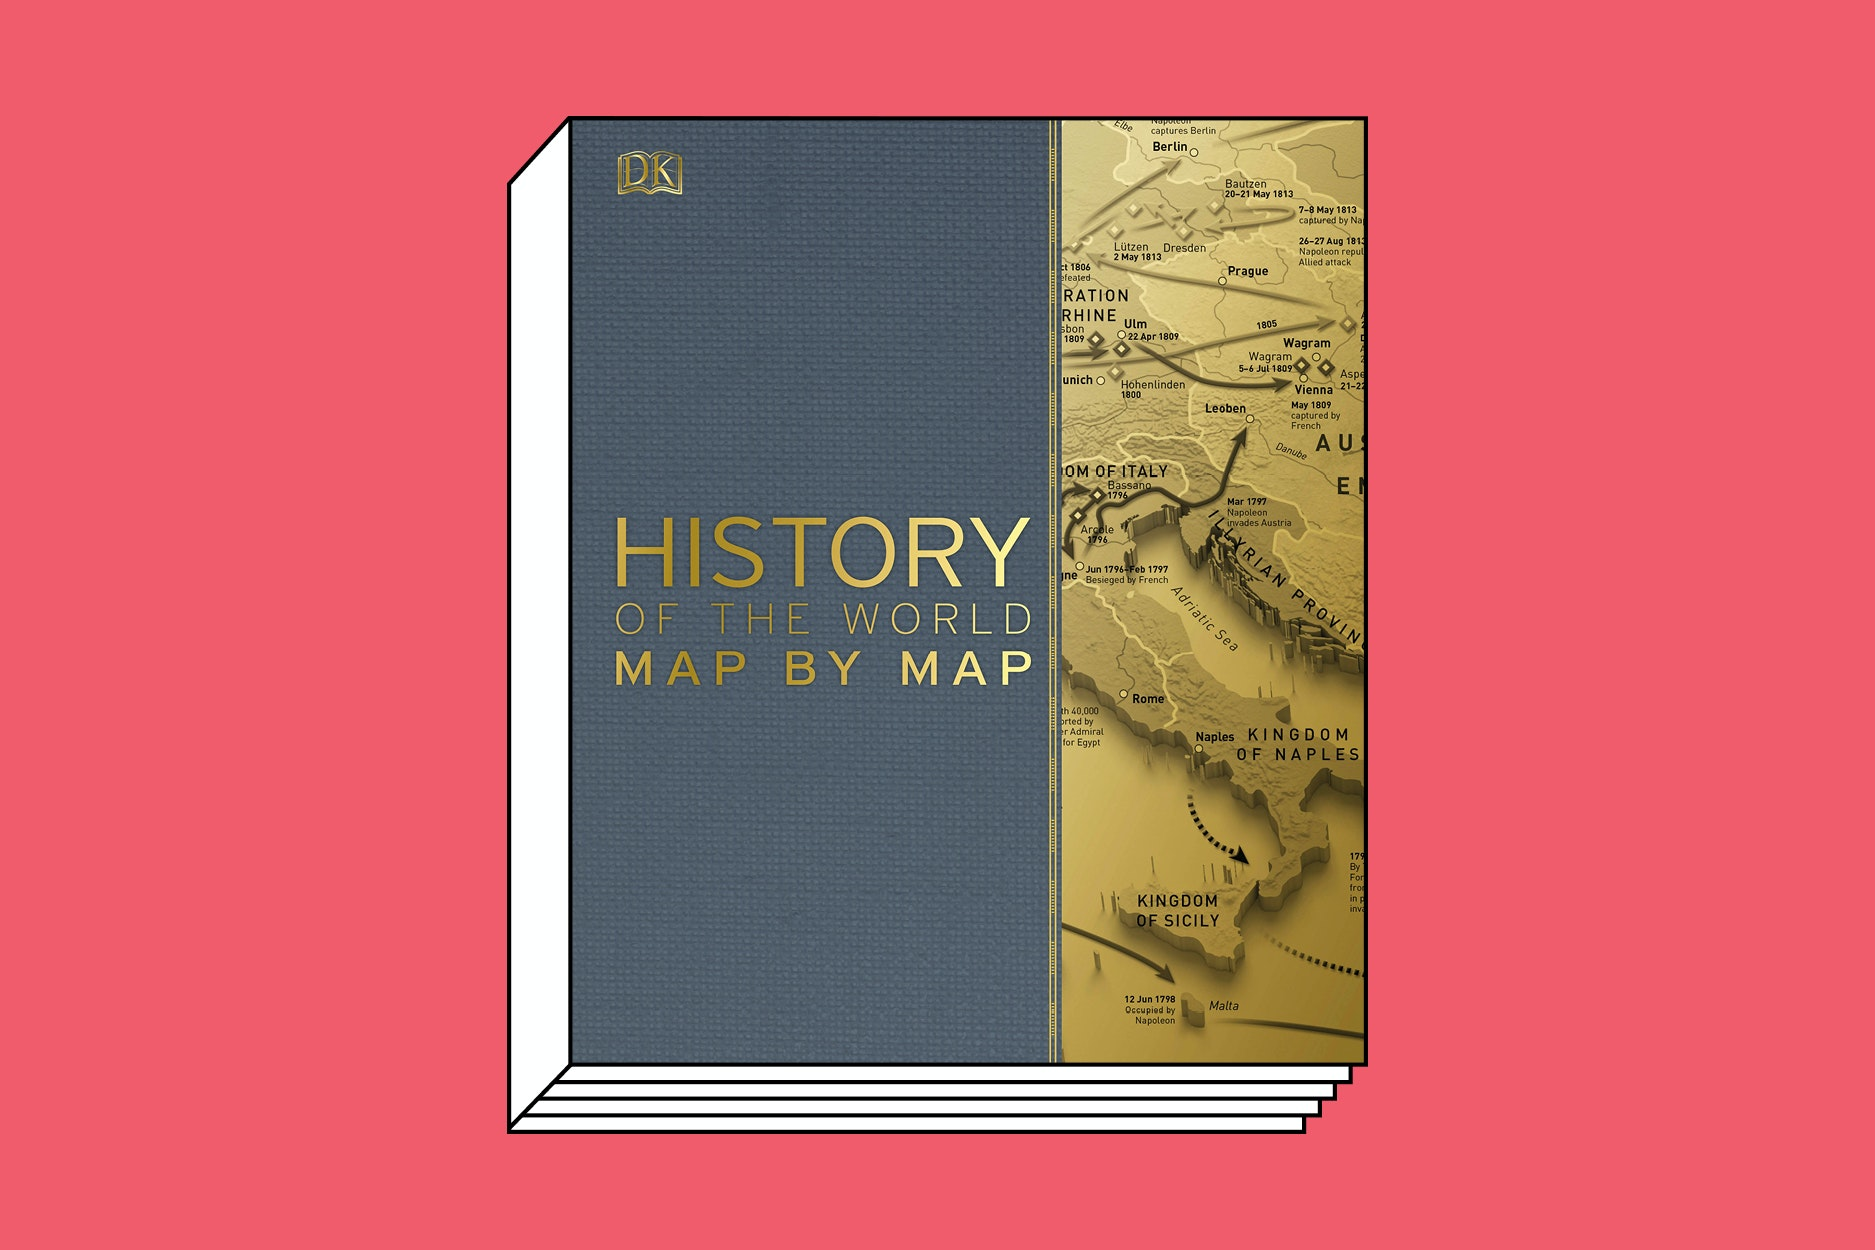 Humankind's progress has been carefully mapped out in this giant tome.